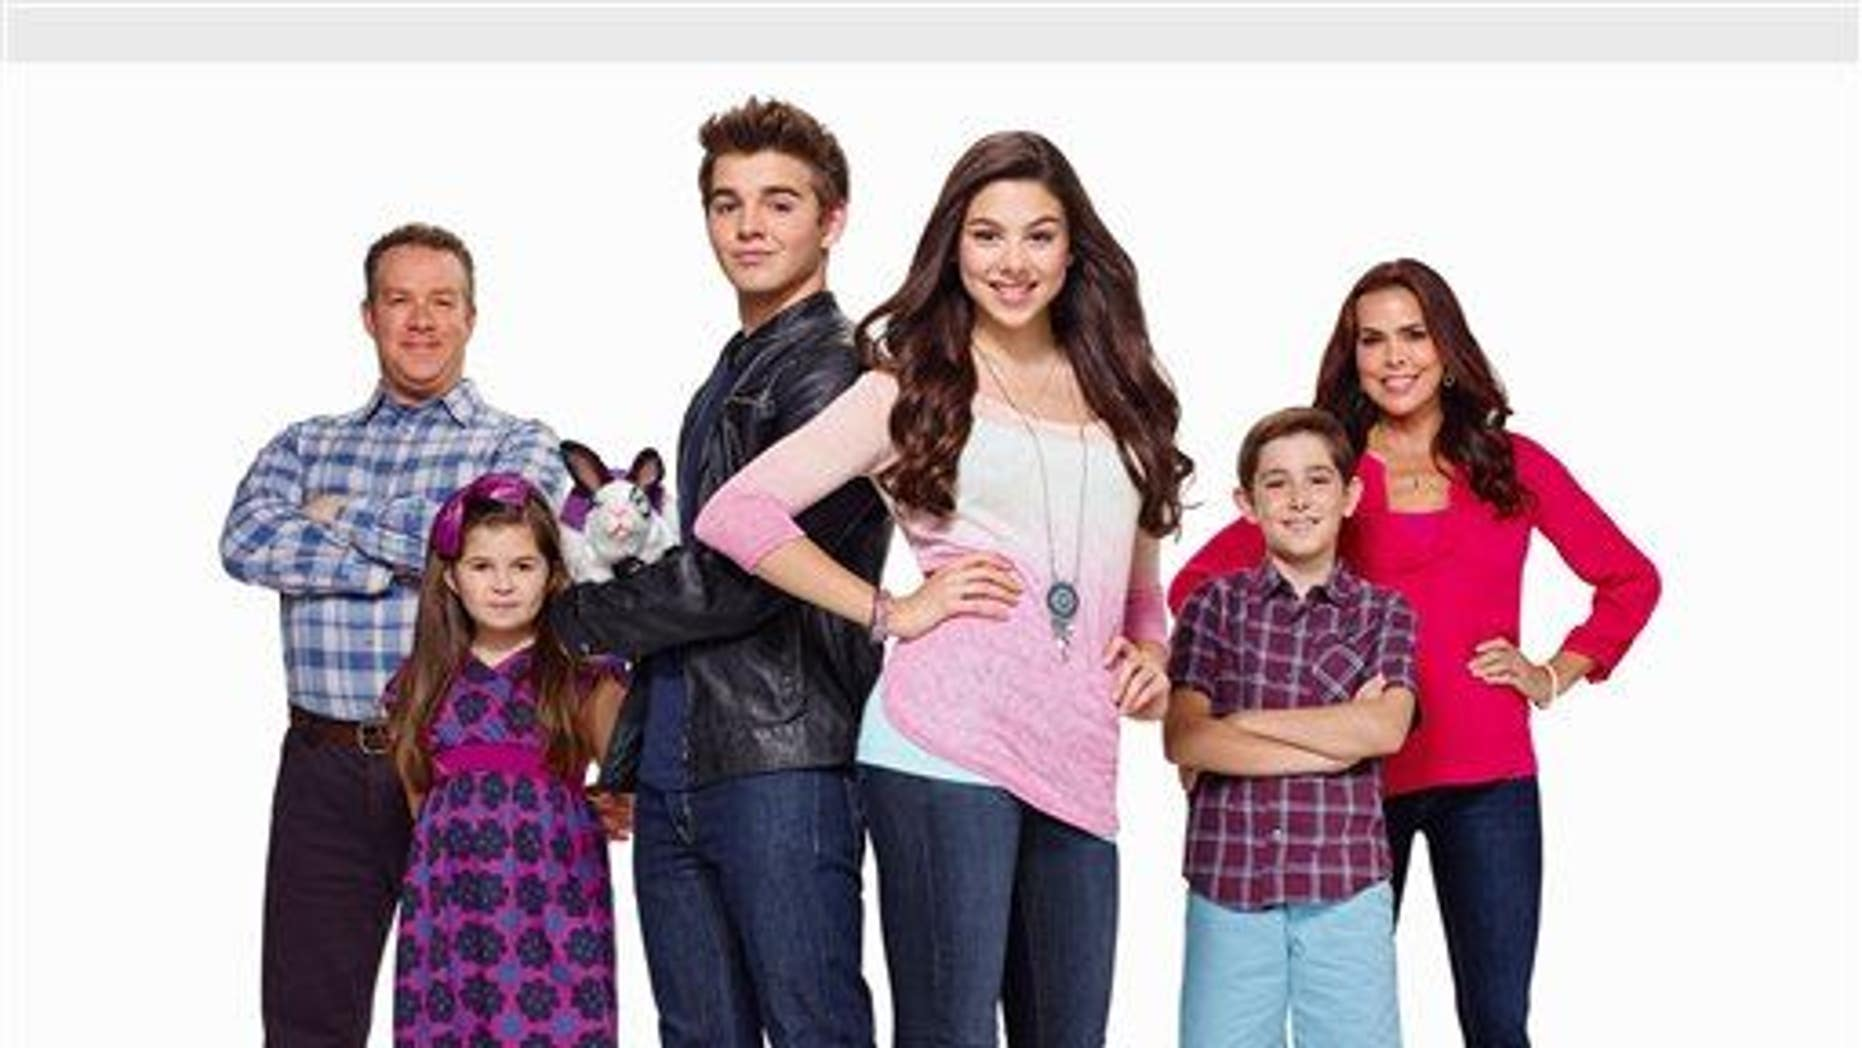 SIBLING RIVALRY GETS SUPERCHARGED IN NEW FAMILY COMEDY SERIES PREMIERING NOV. 2 AT 9 P.M. (ET/PT) ON NICKELODEON.